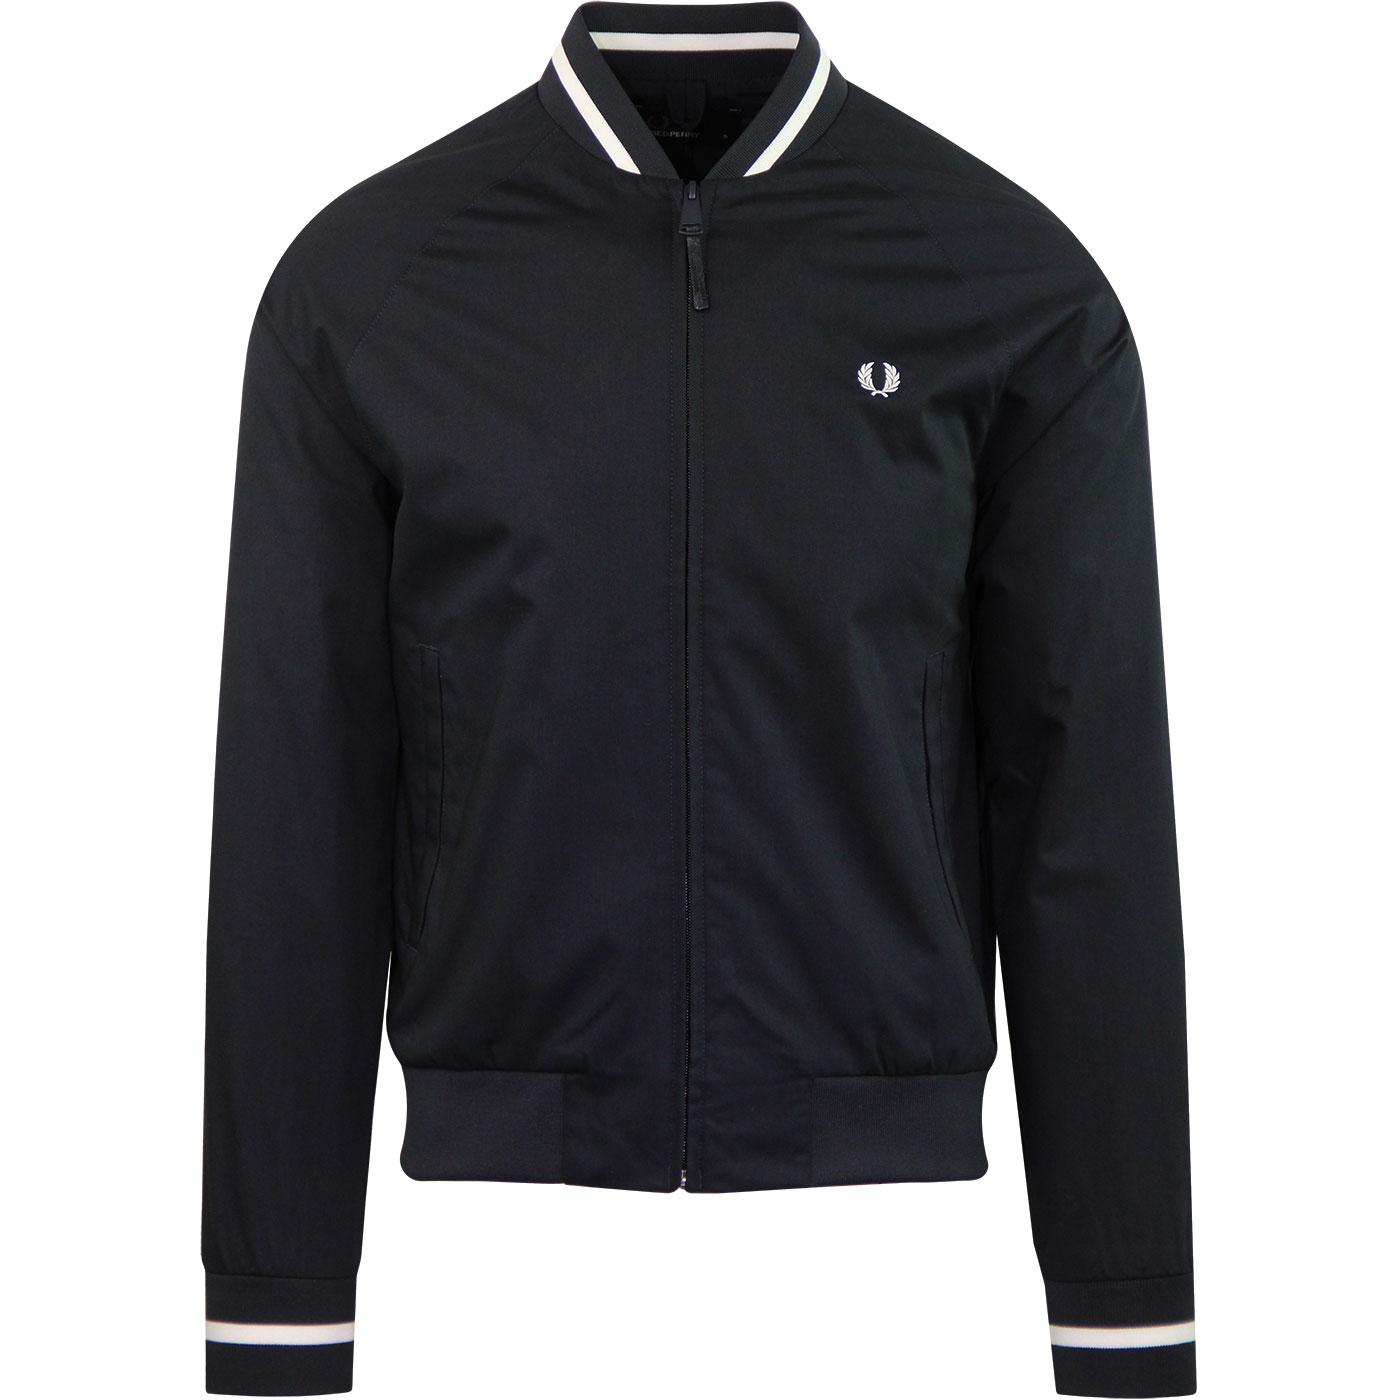 J5521 tennis bomber jacket navy